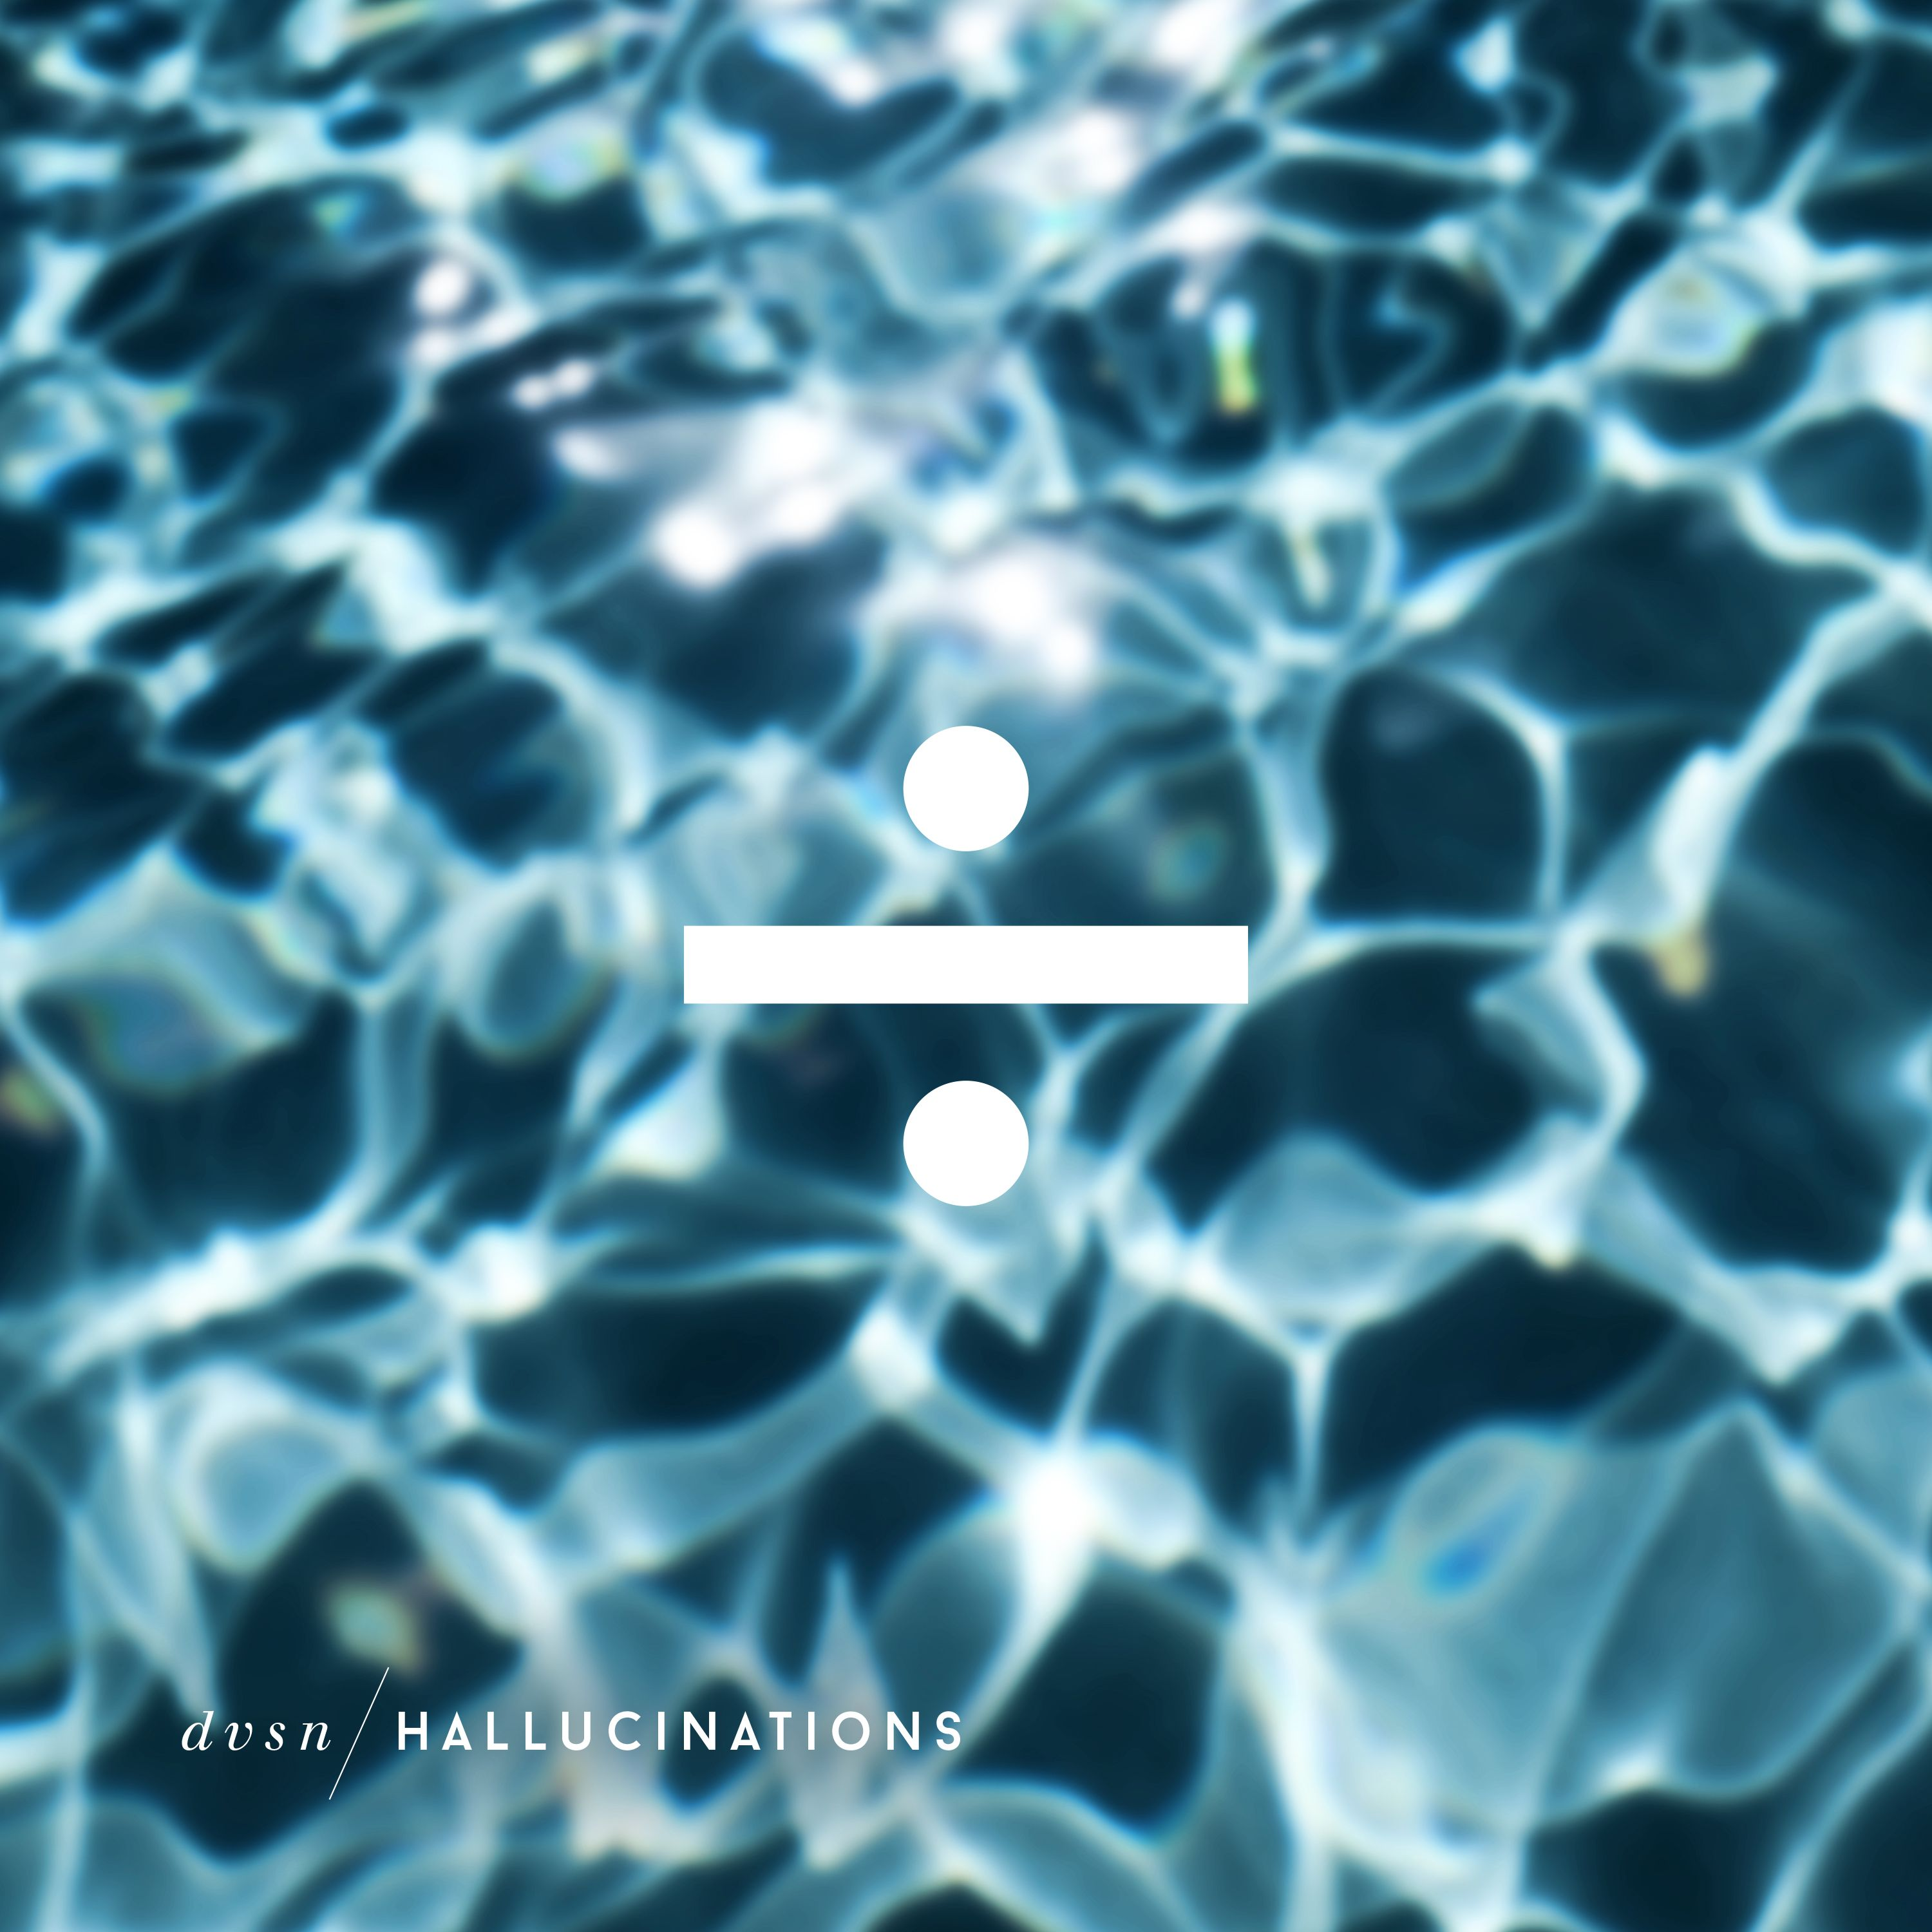 """Hallucinations"" by DVSN single art"